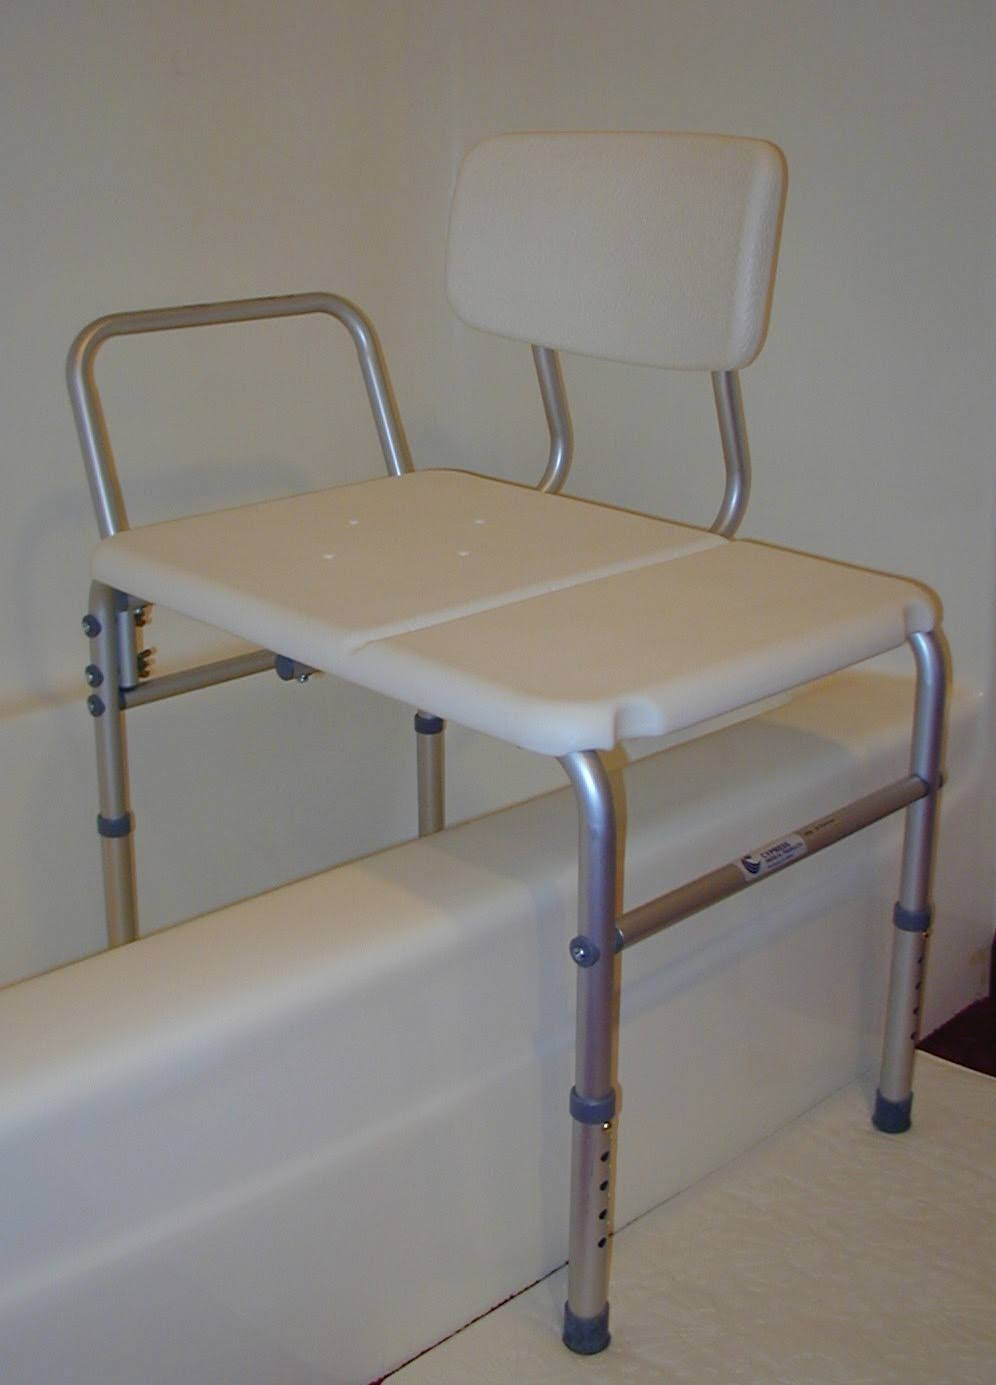 Sunmark Bathtub Transfer Bench - With Reversible Backrest